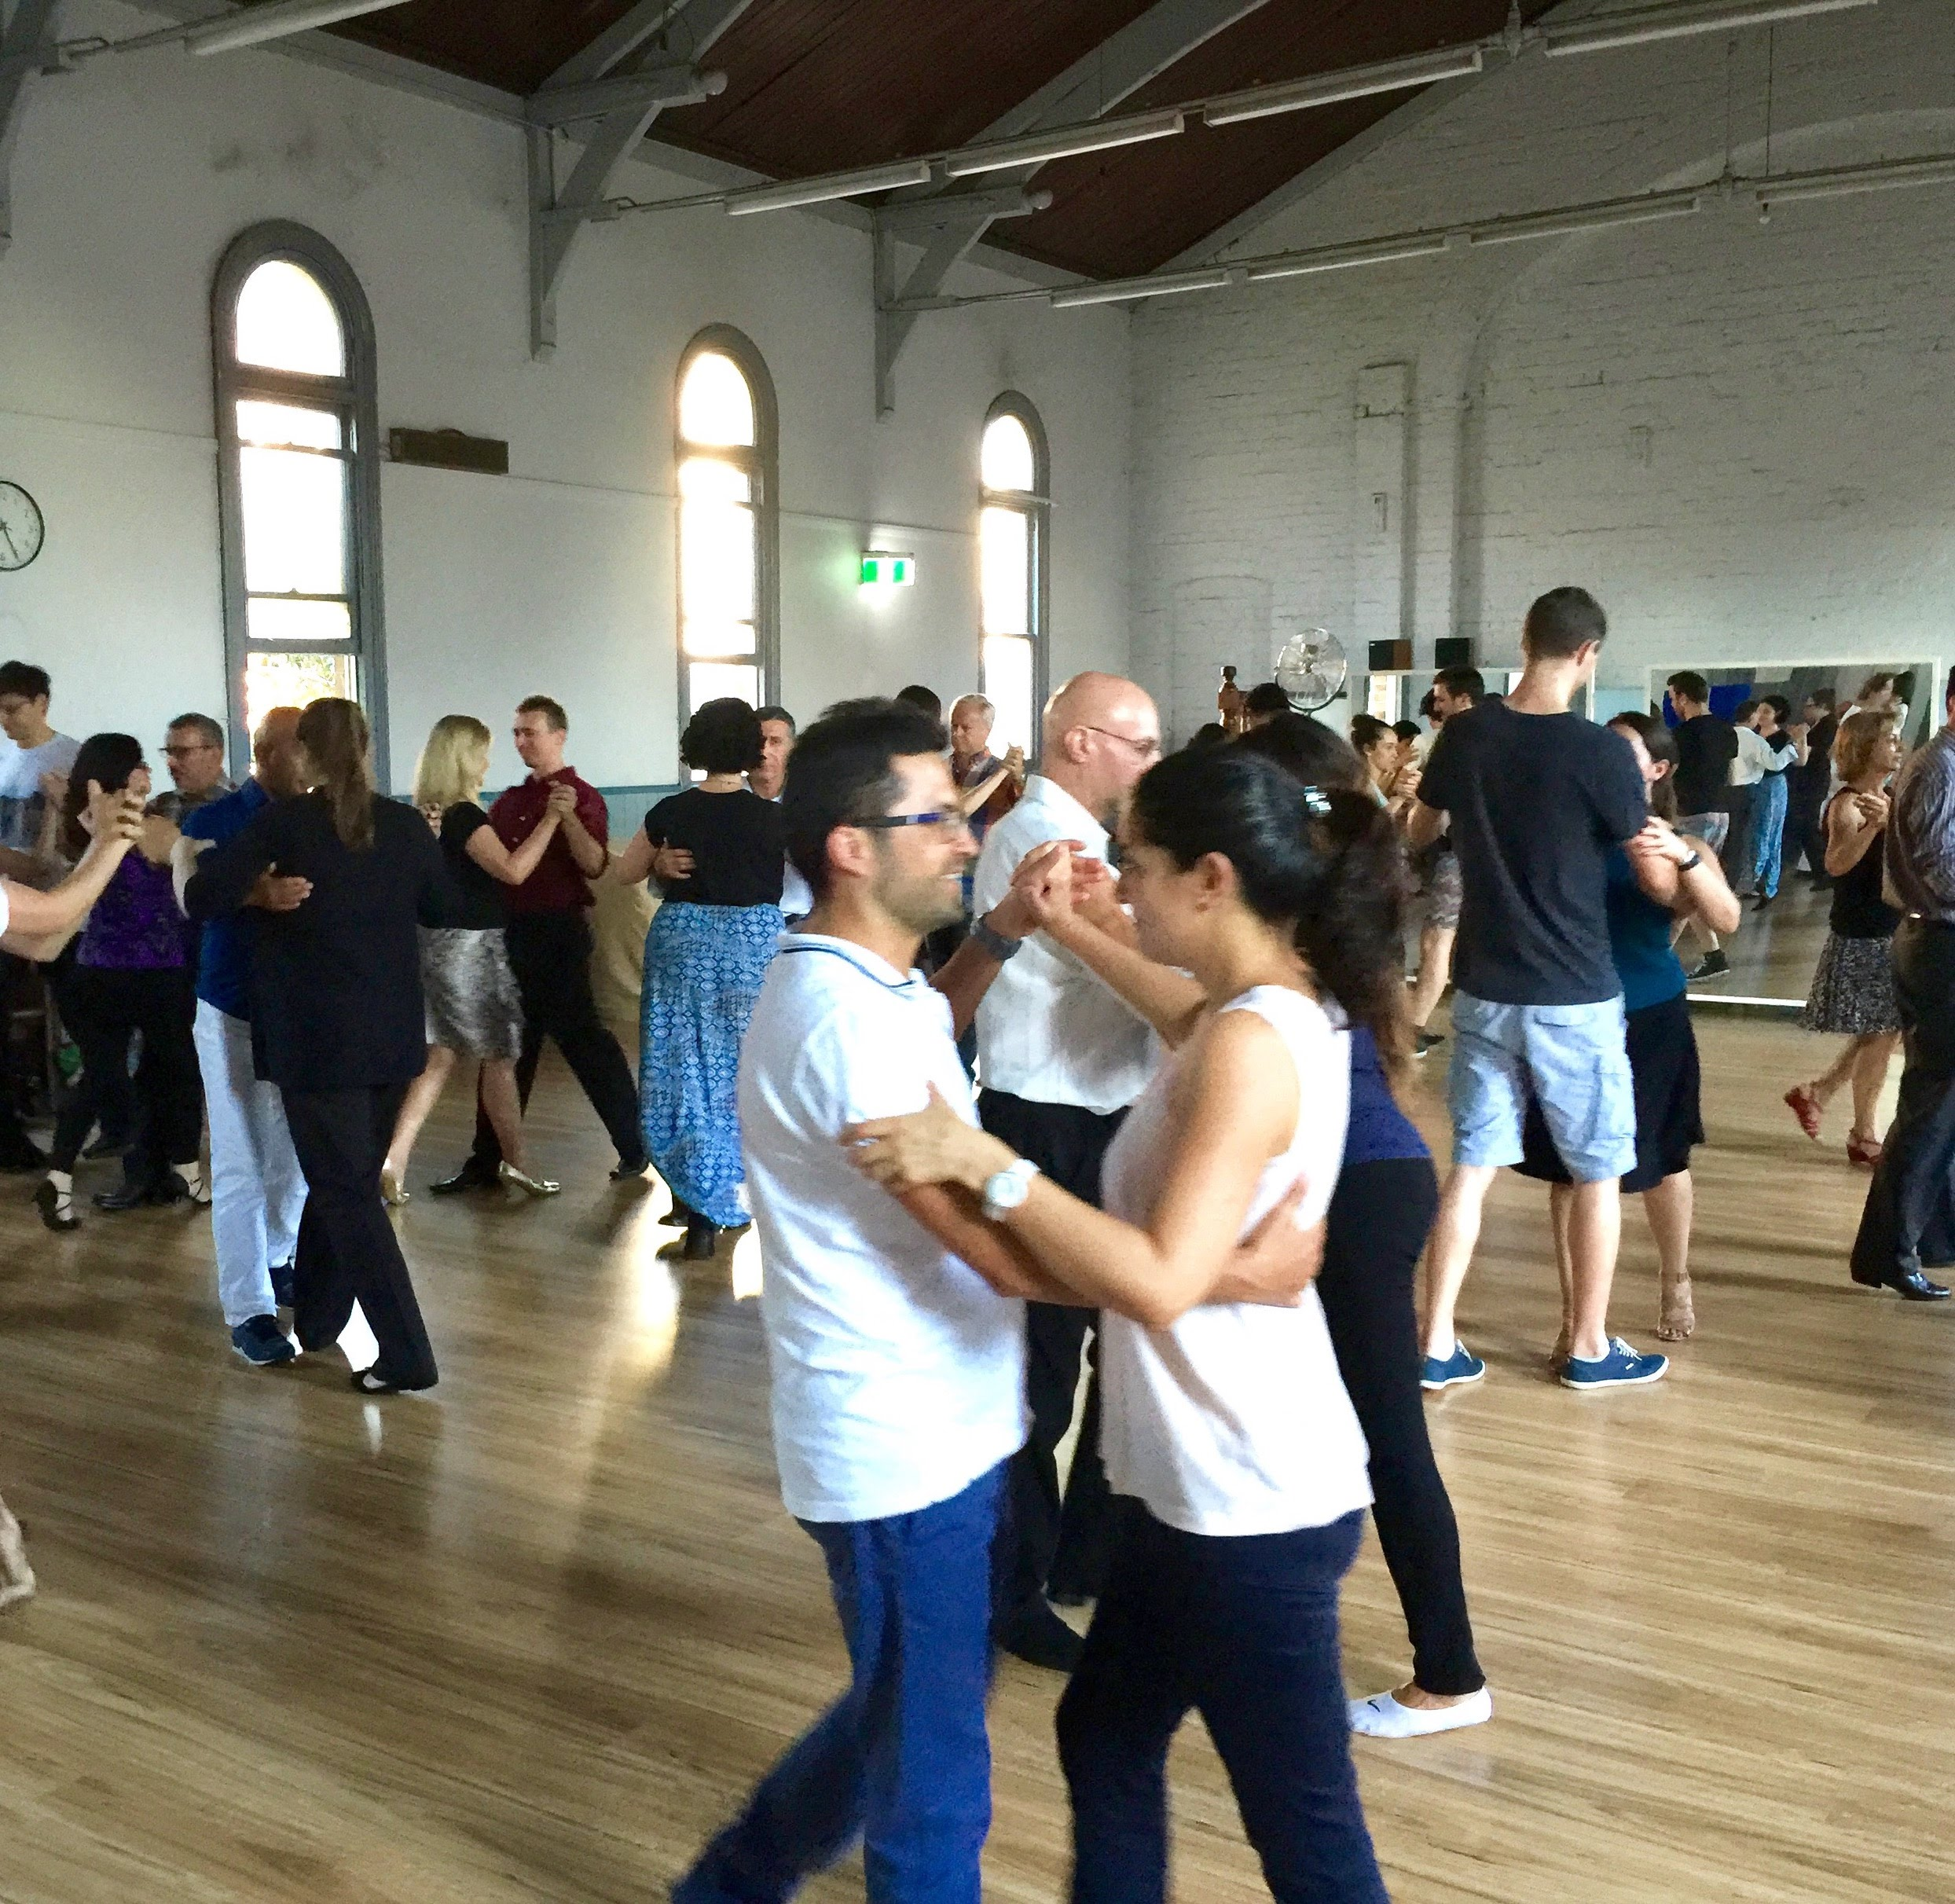 north sydney glebe bondi tango lessons classes studio best teachers